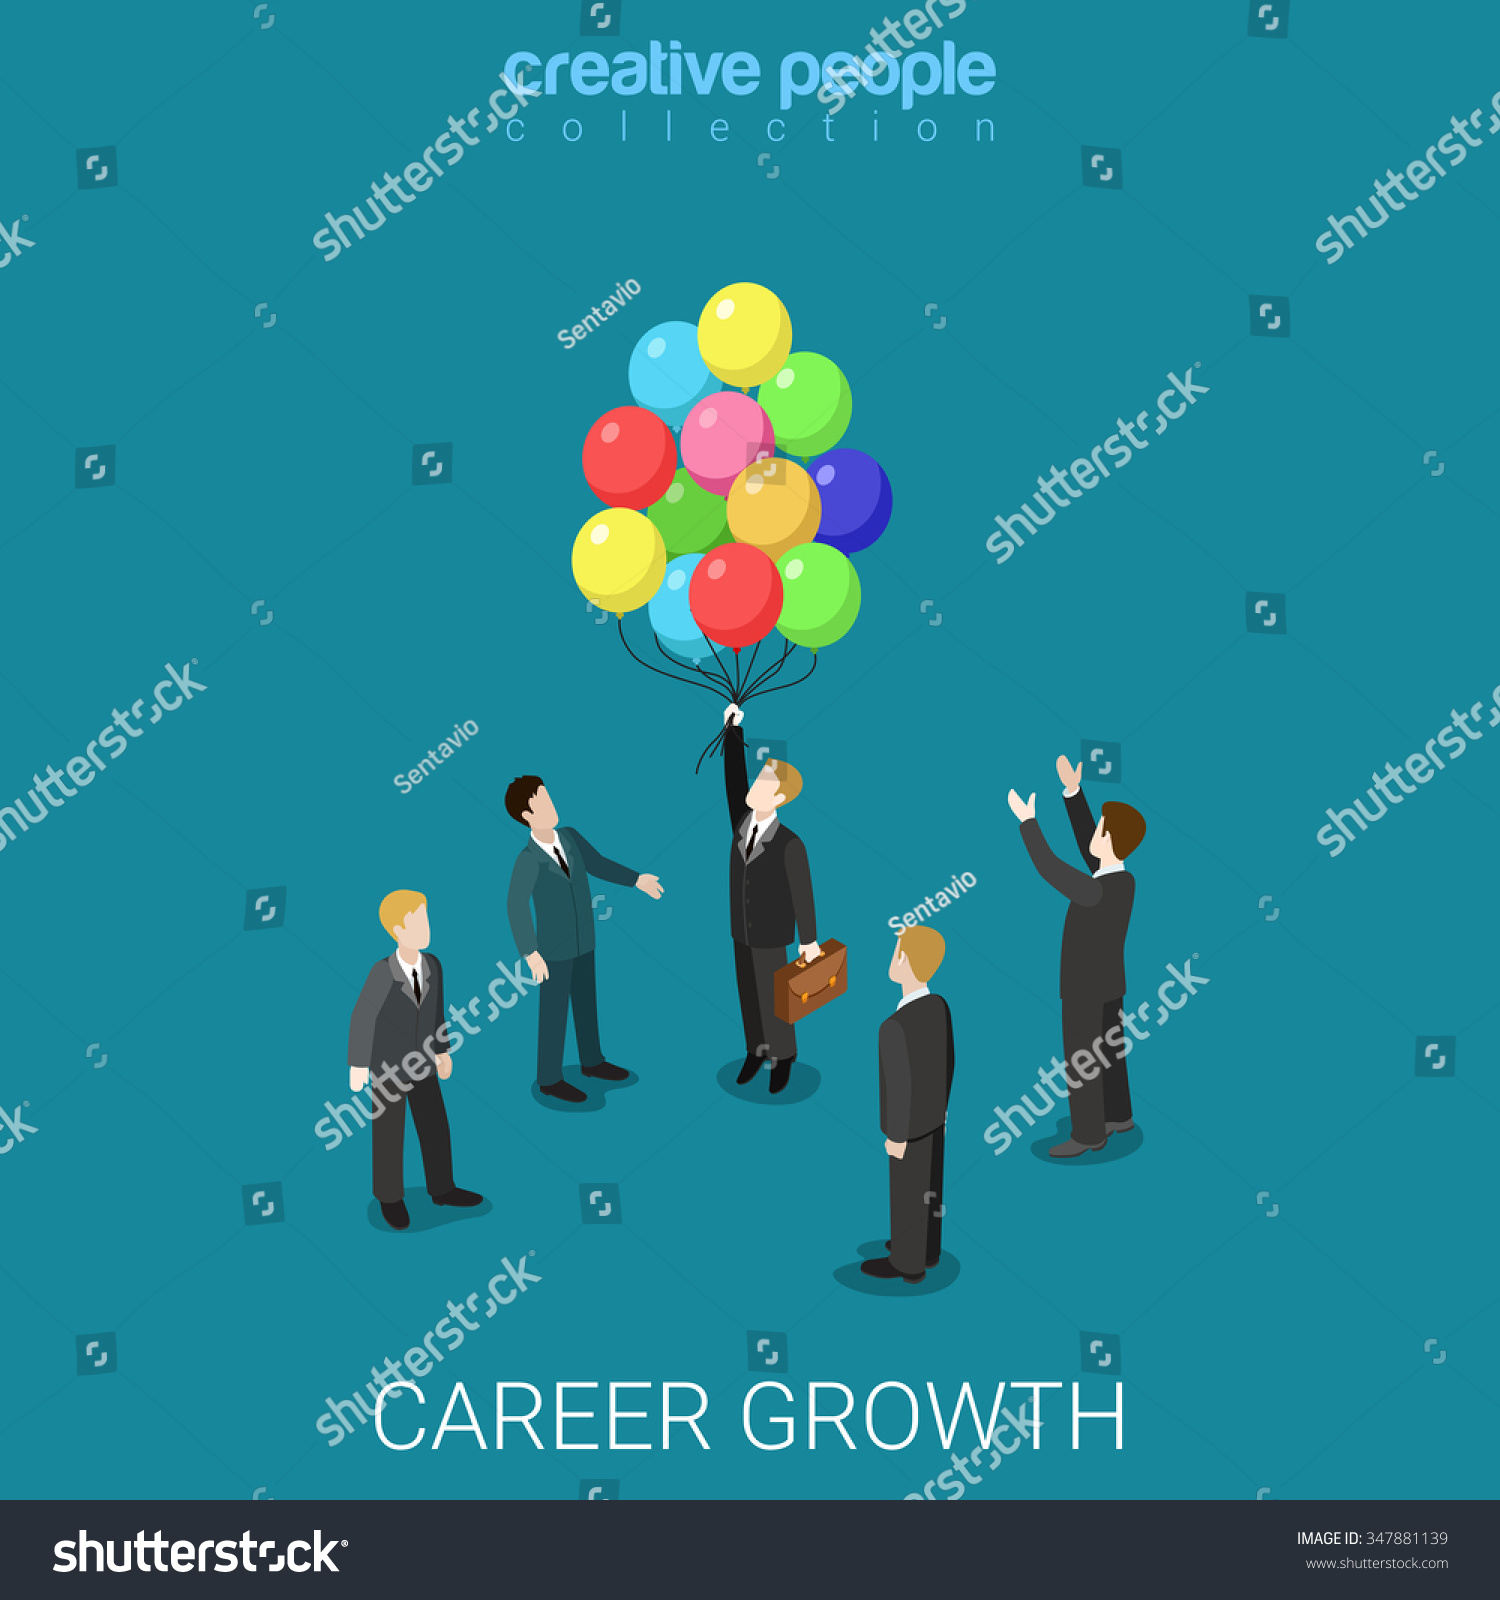 career growth job change flat d stock vector shutterstock career growth job change flat 3d isometry isometric business headhunting concept web vector illustration businessman